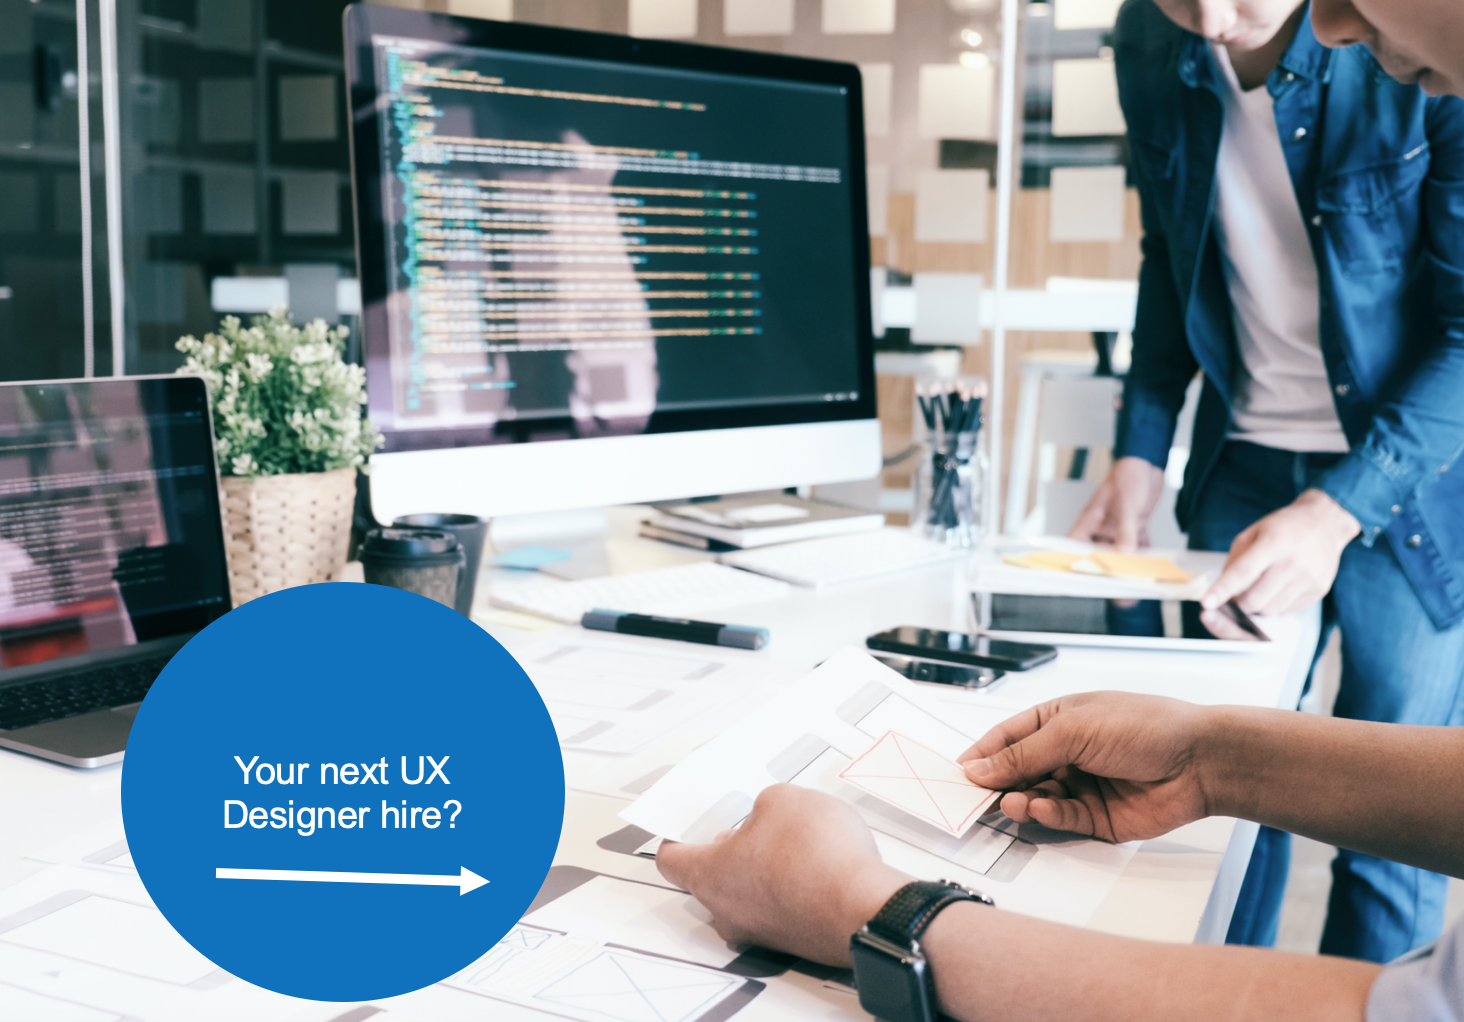 Your next UX Designer hire- working